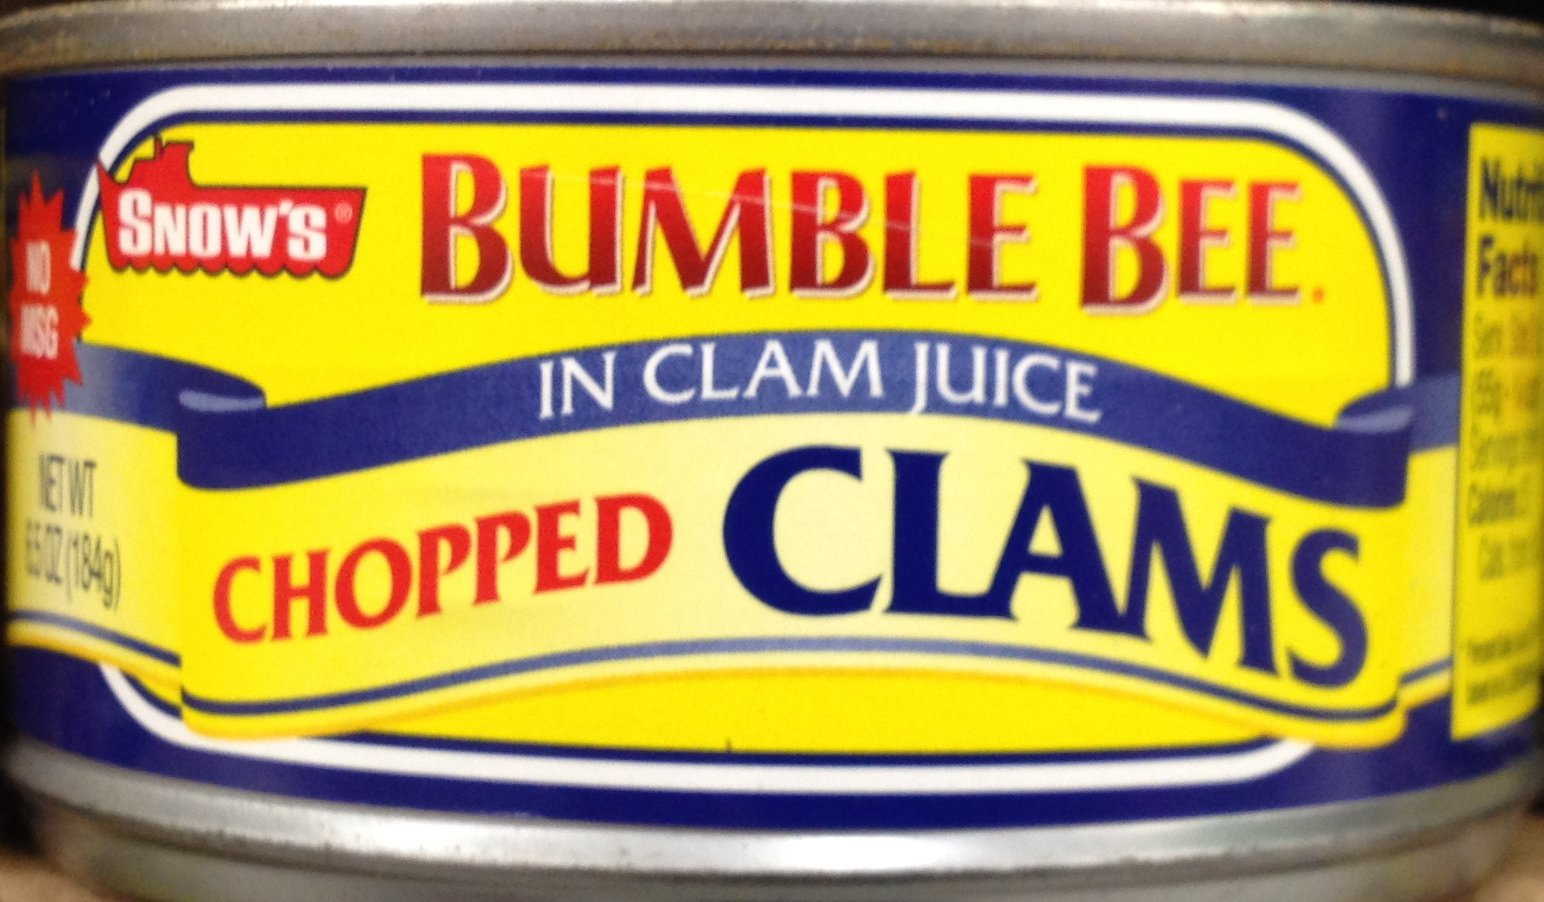 Snow's Bumble Bee CHOPPED CLAMS in Clam Juice 6.5oz (3 Pack)